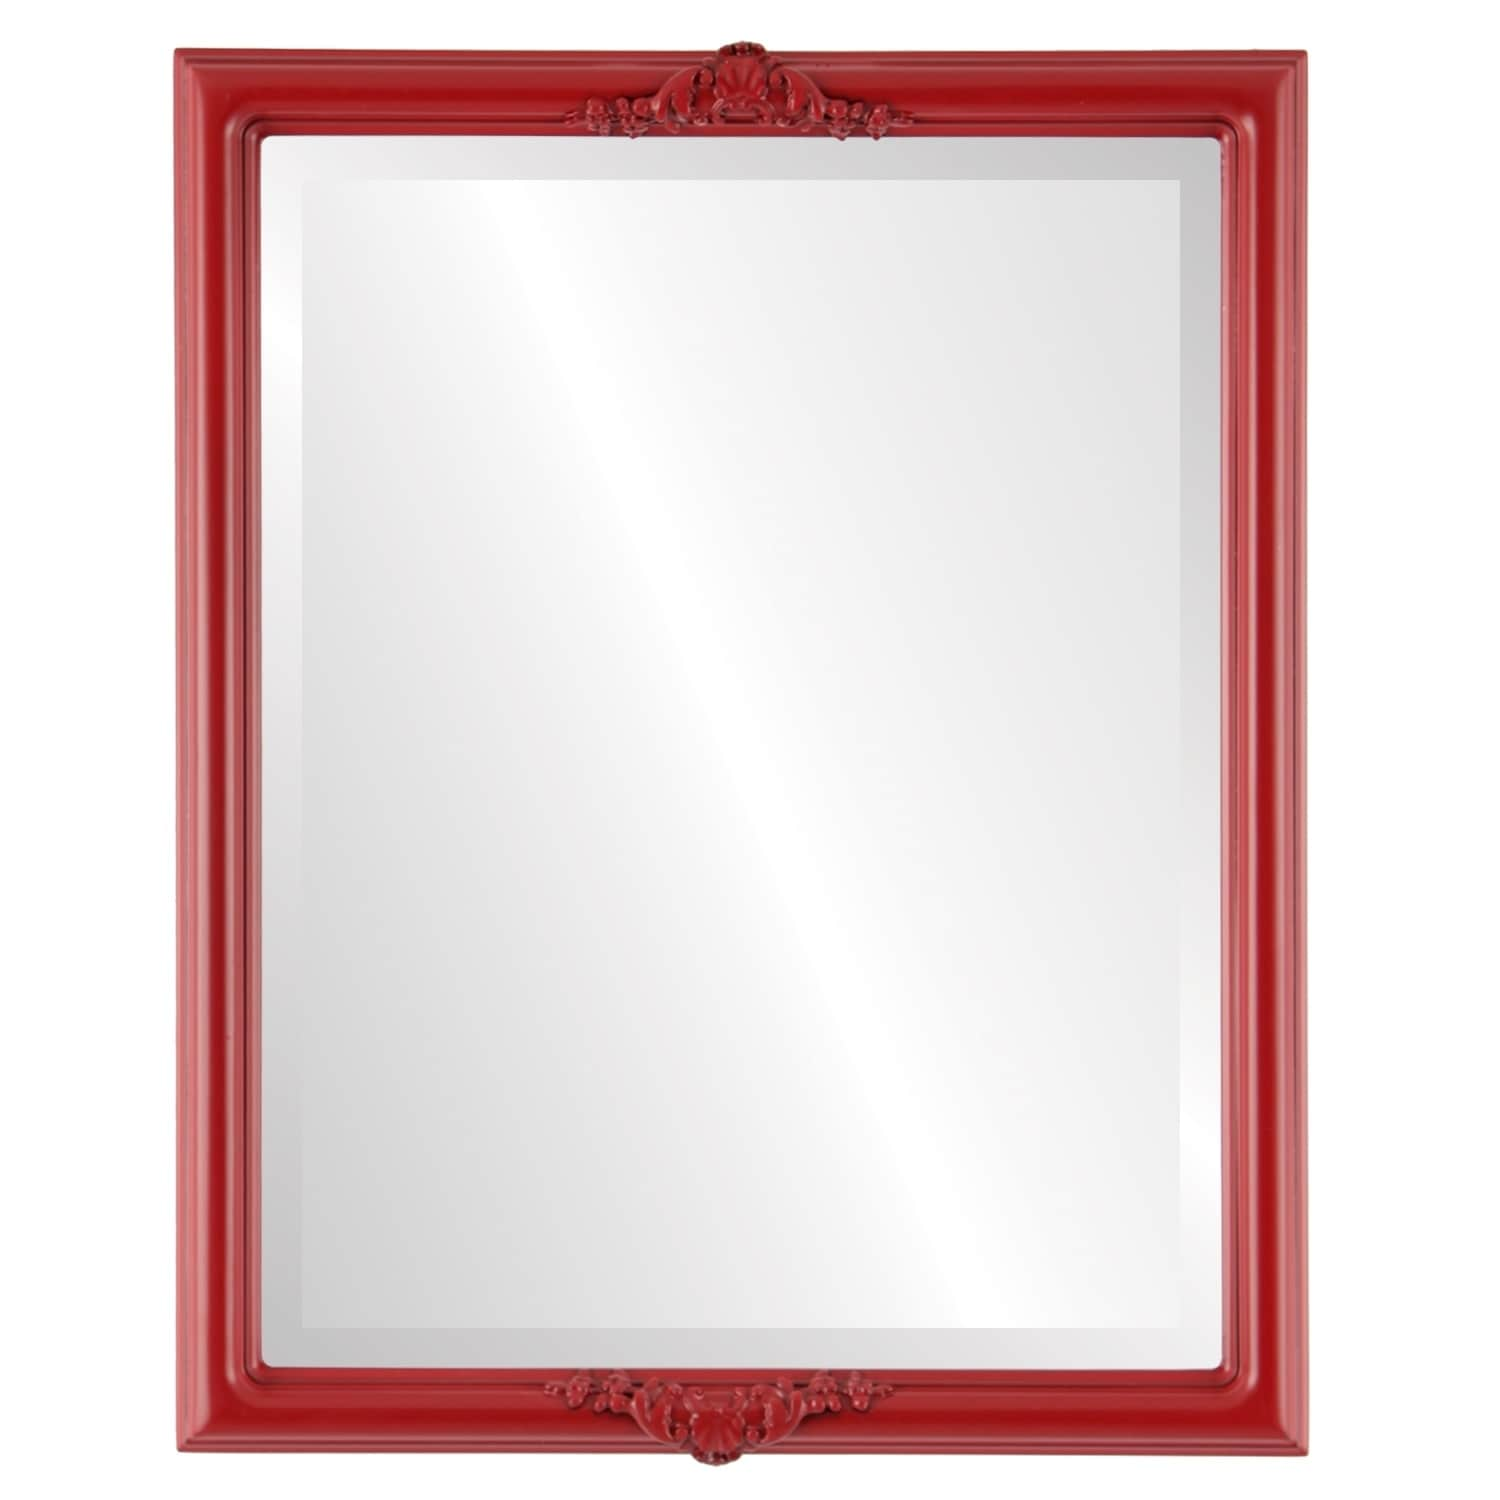 Contessa Framed Rectangle Mirror in Holiday Red (19x25)